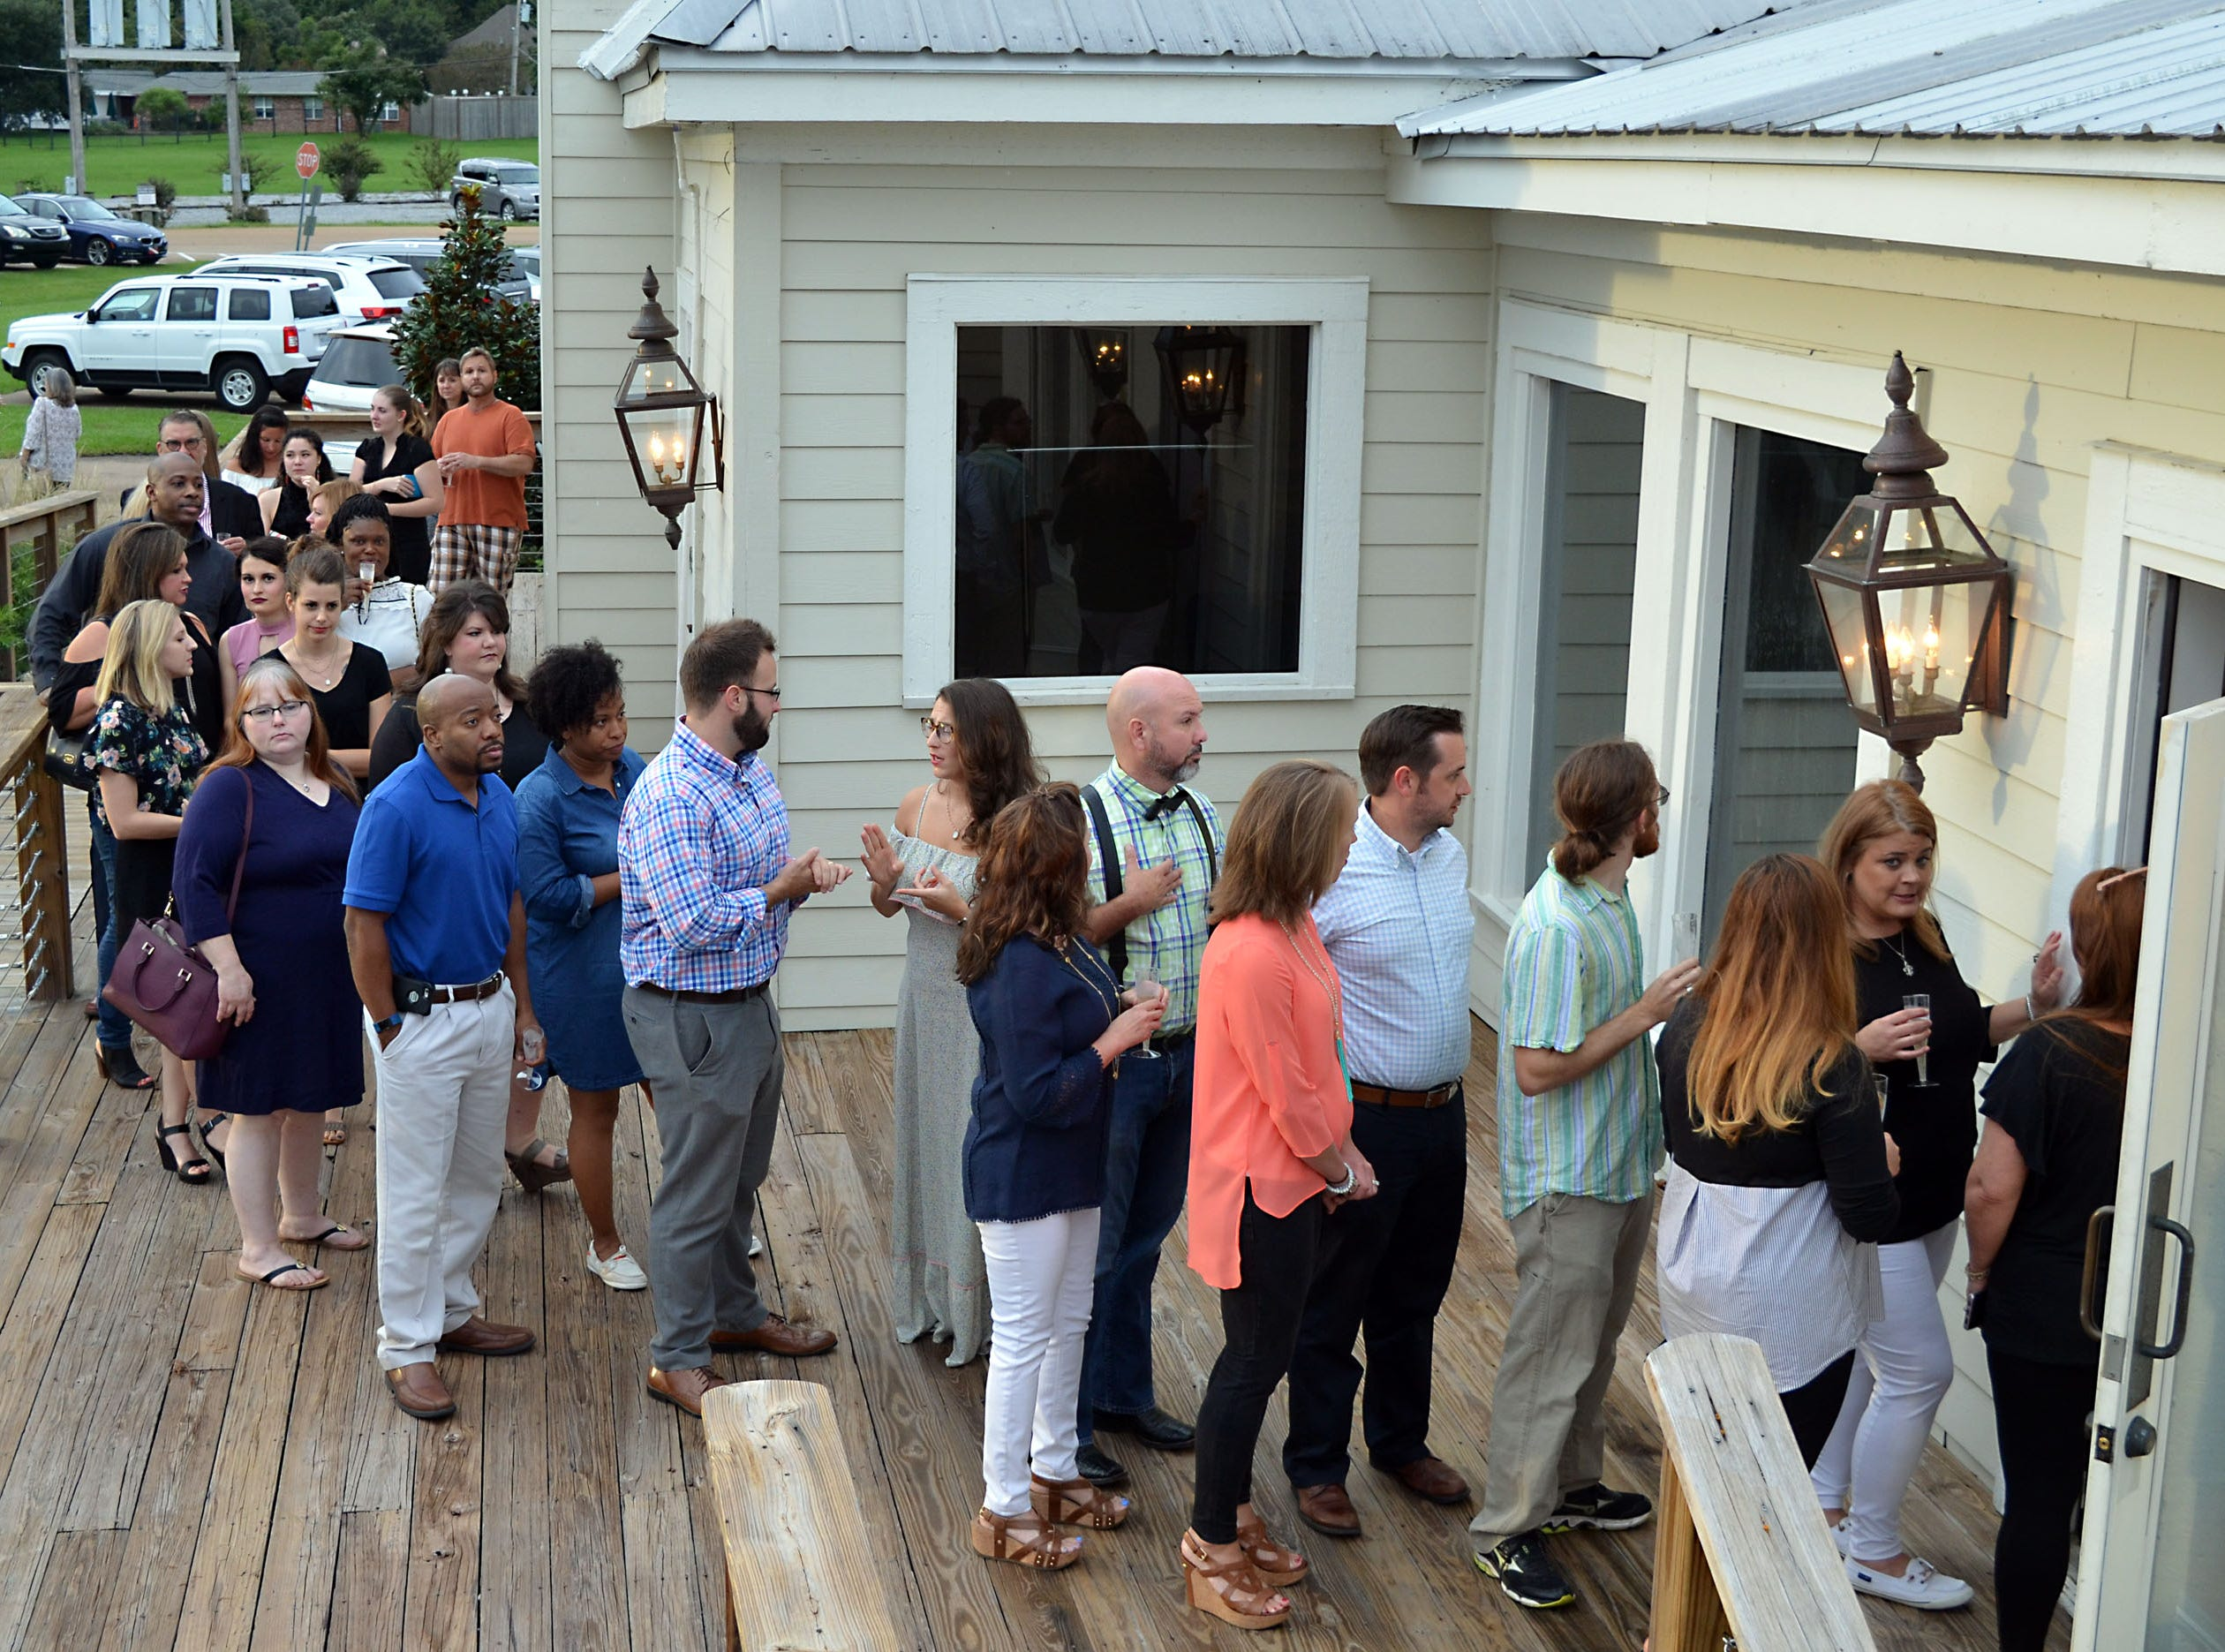 Dozens of supporters turned out for the Sweetest Chefs event held Monday at The Lake House in Ridgeland. The event was held to raise funds for Extra Table to feed the hungry in our local area.